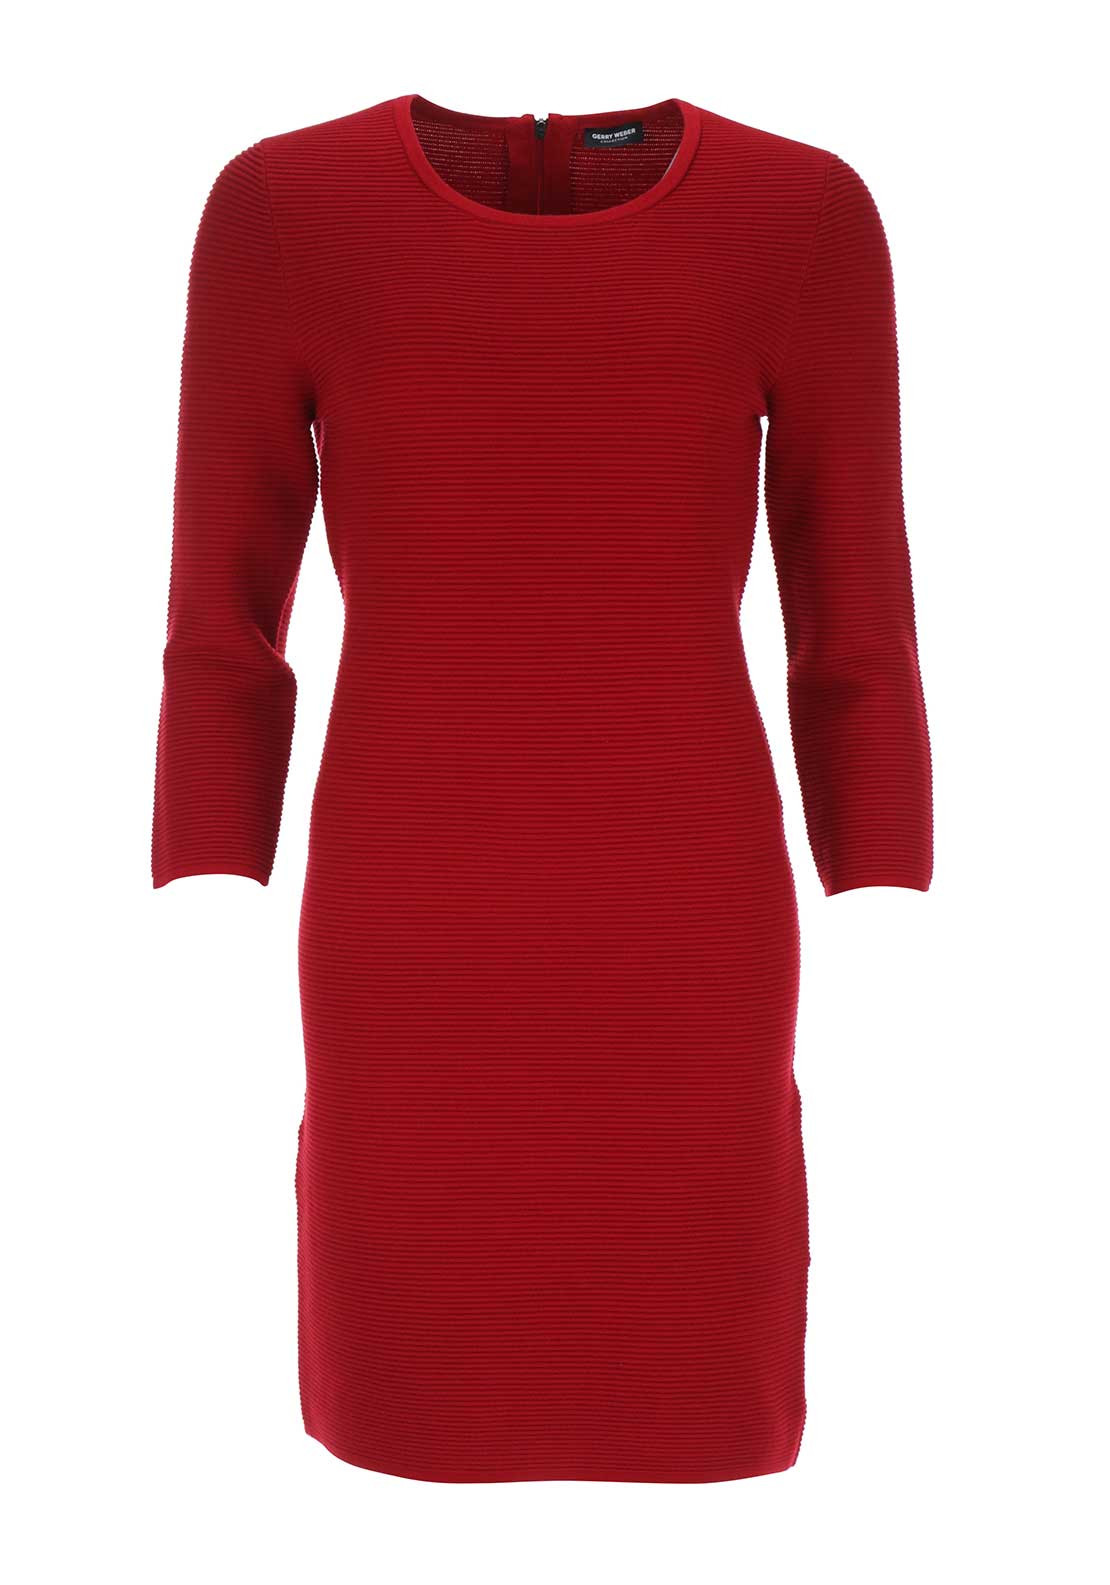 Gerry Weber Ribbed Straight Jersey Dress, Red